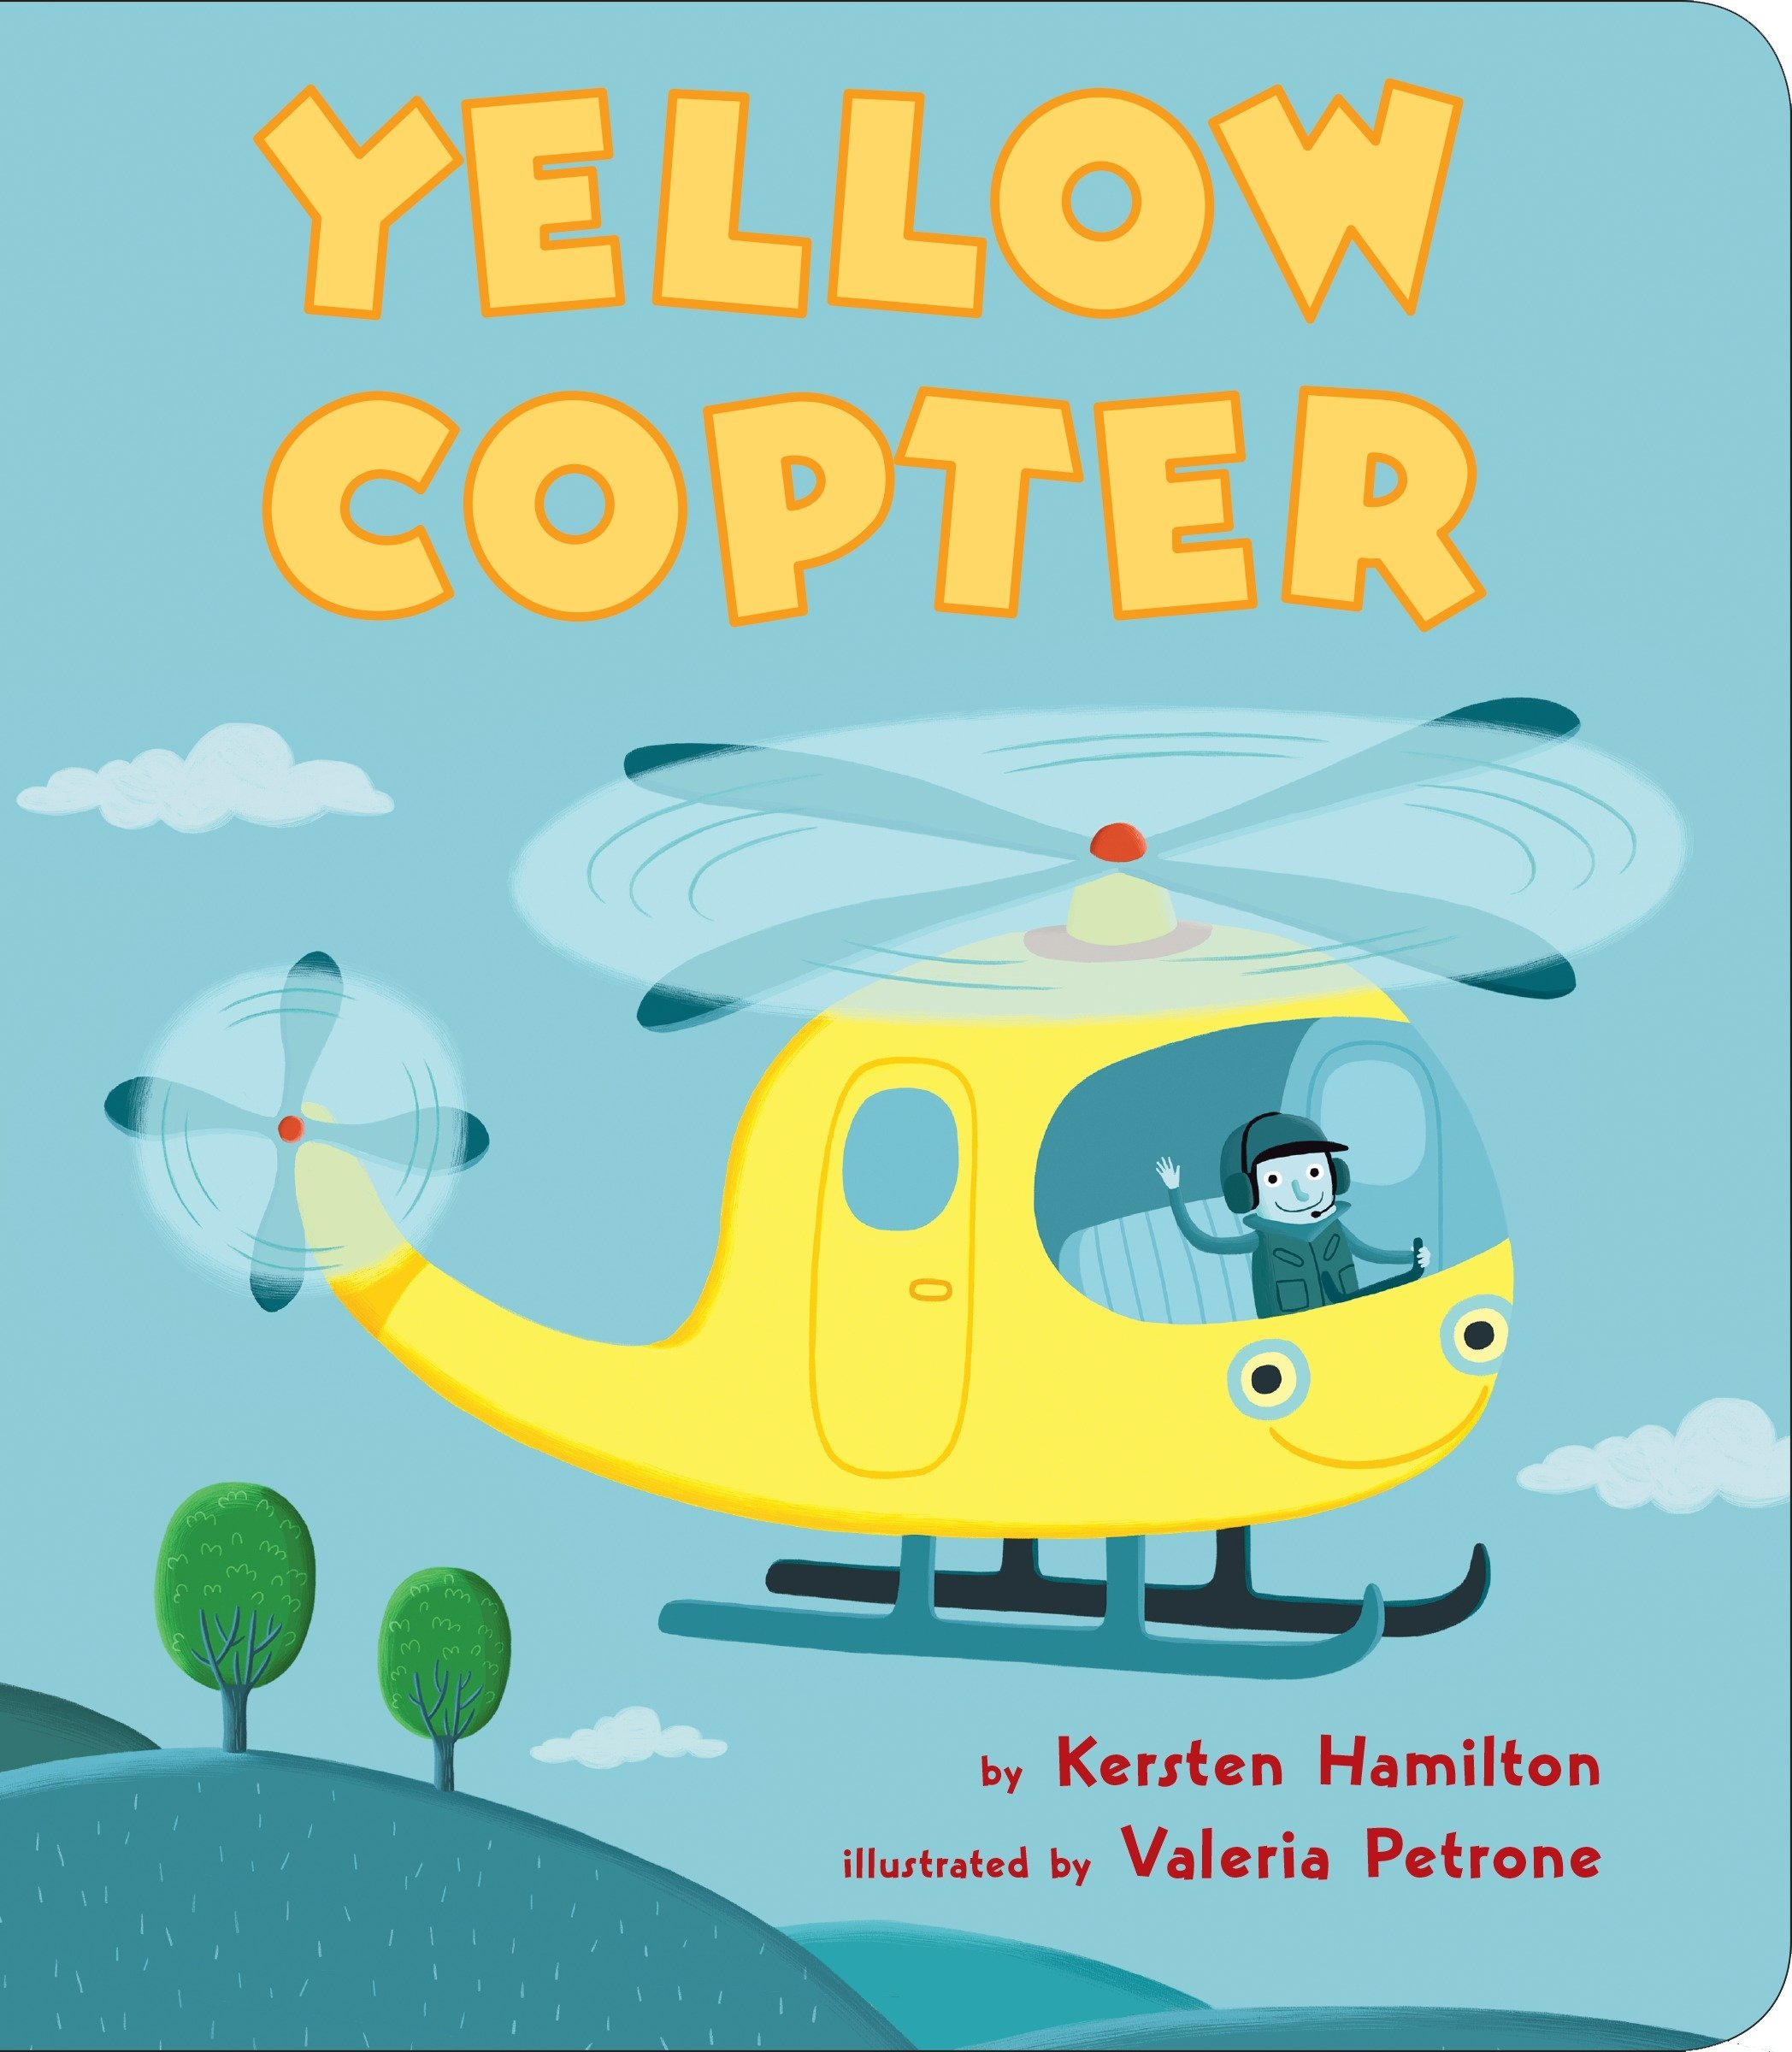 Yellow Copter Board book – May 17, 2016 Kersten Hamilton Valeria Petrone 1101997966 Concepts - Colors